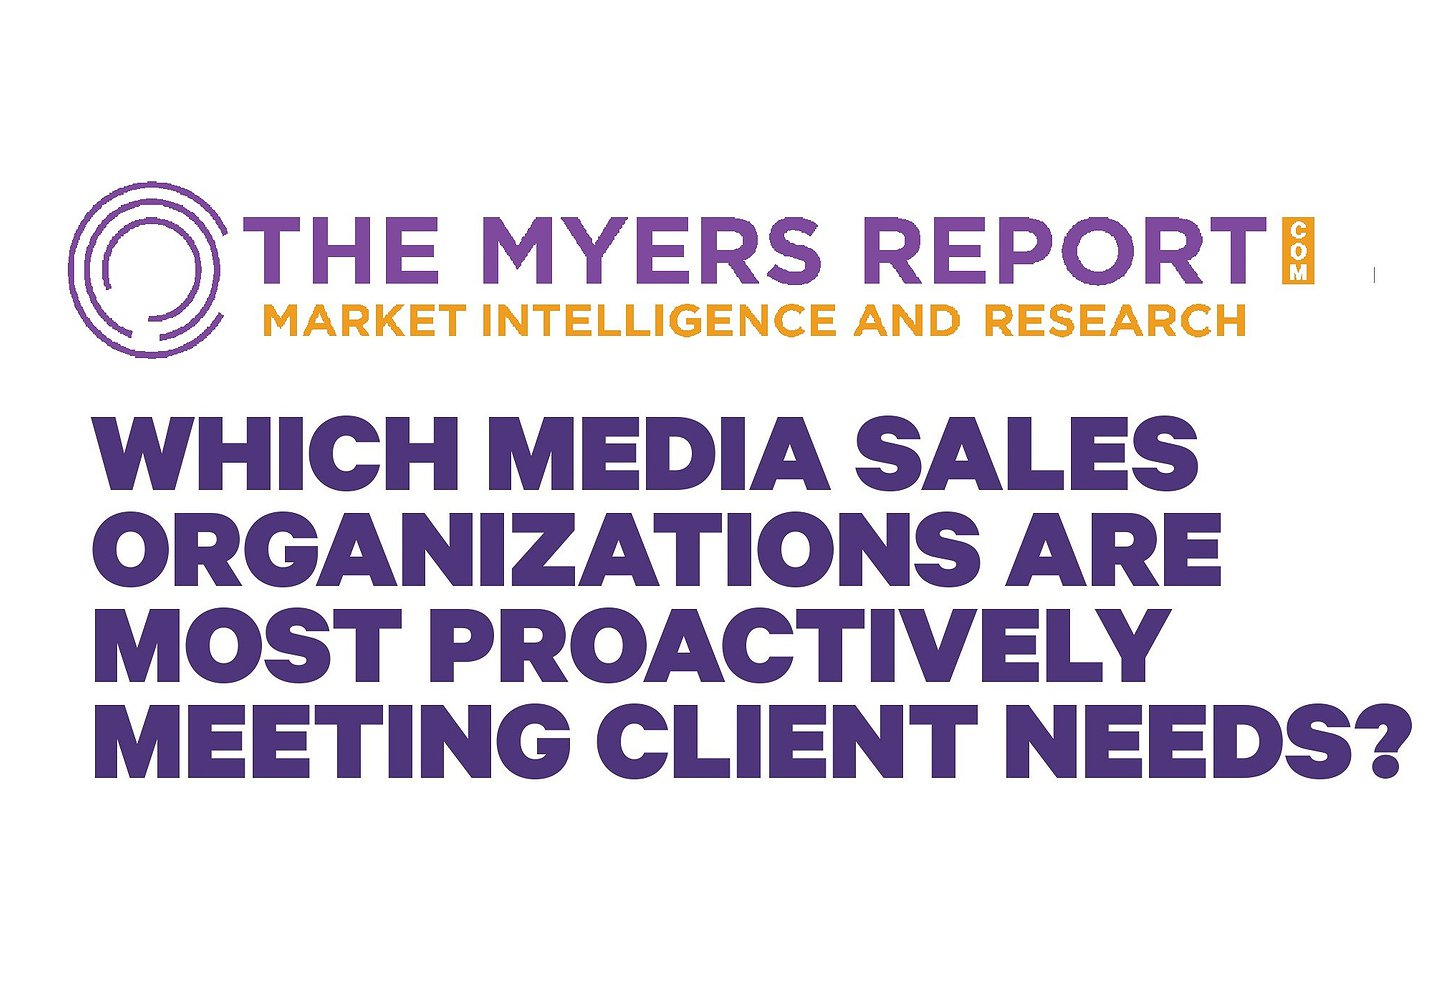 Which Media Sales Organizations are Most Proactively Meeting Client Needs?